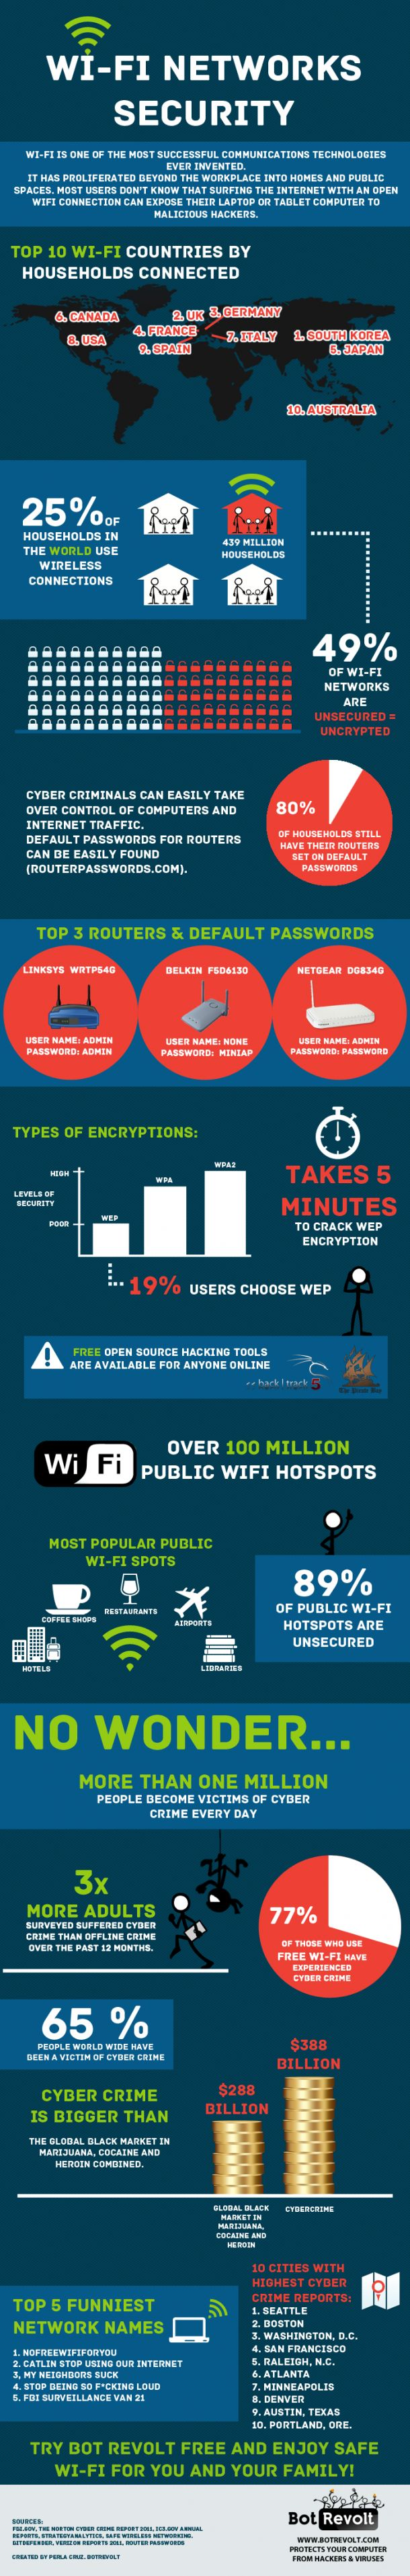 WIFI Networks Security[INFOGRAPHIC]